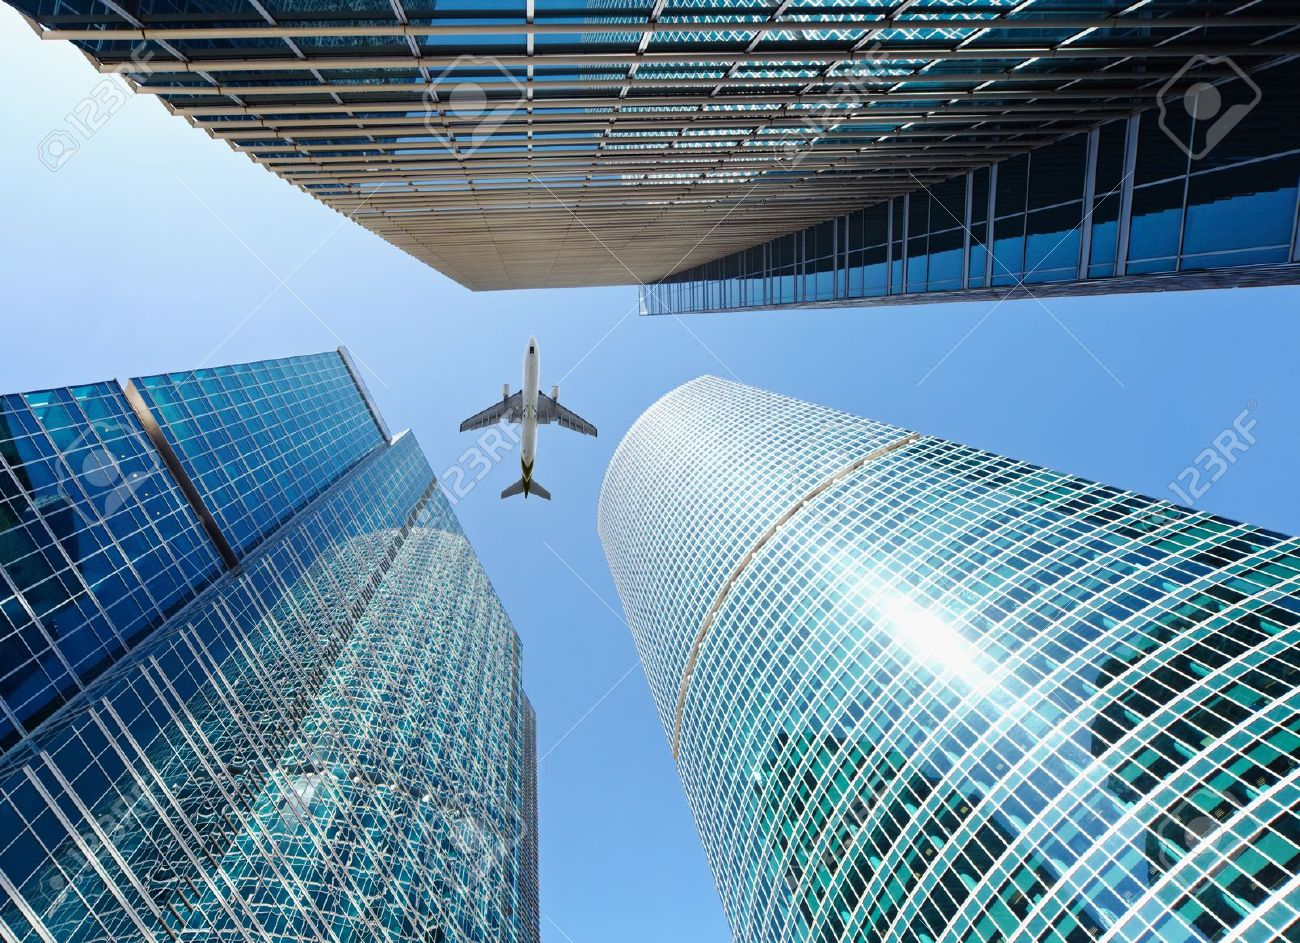 Airliner flying over high-rise buildings - skyscrapers Stock Photo - 12295161